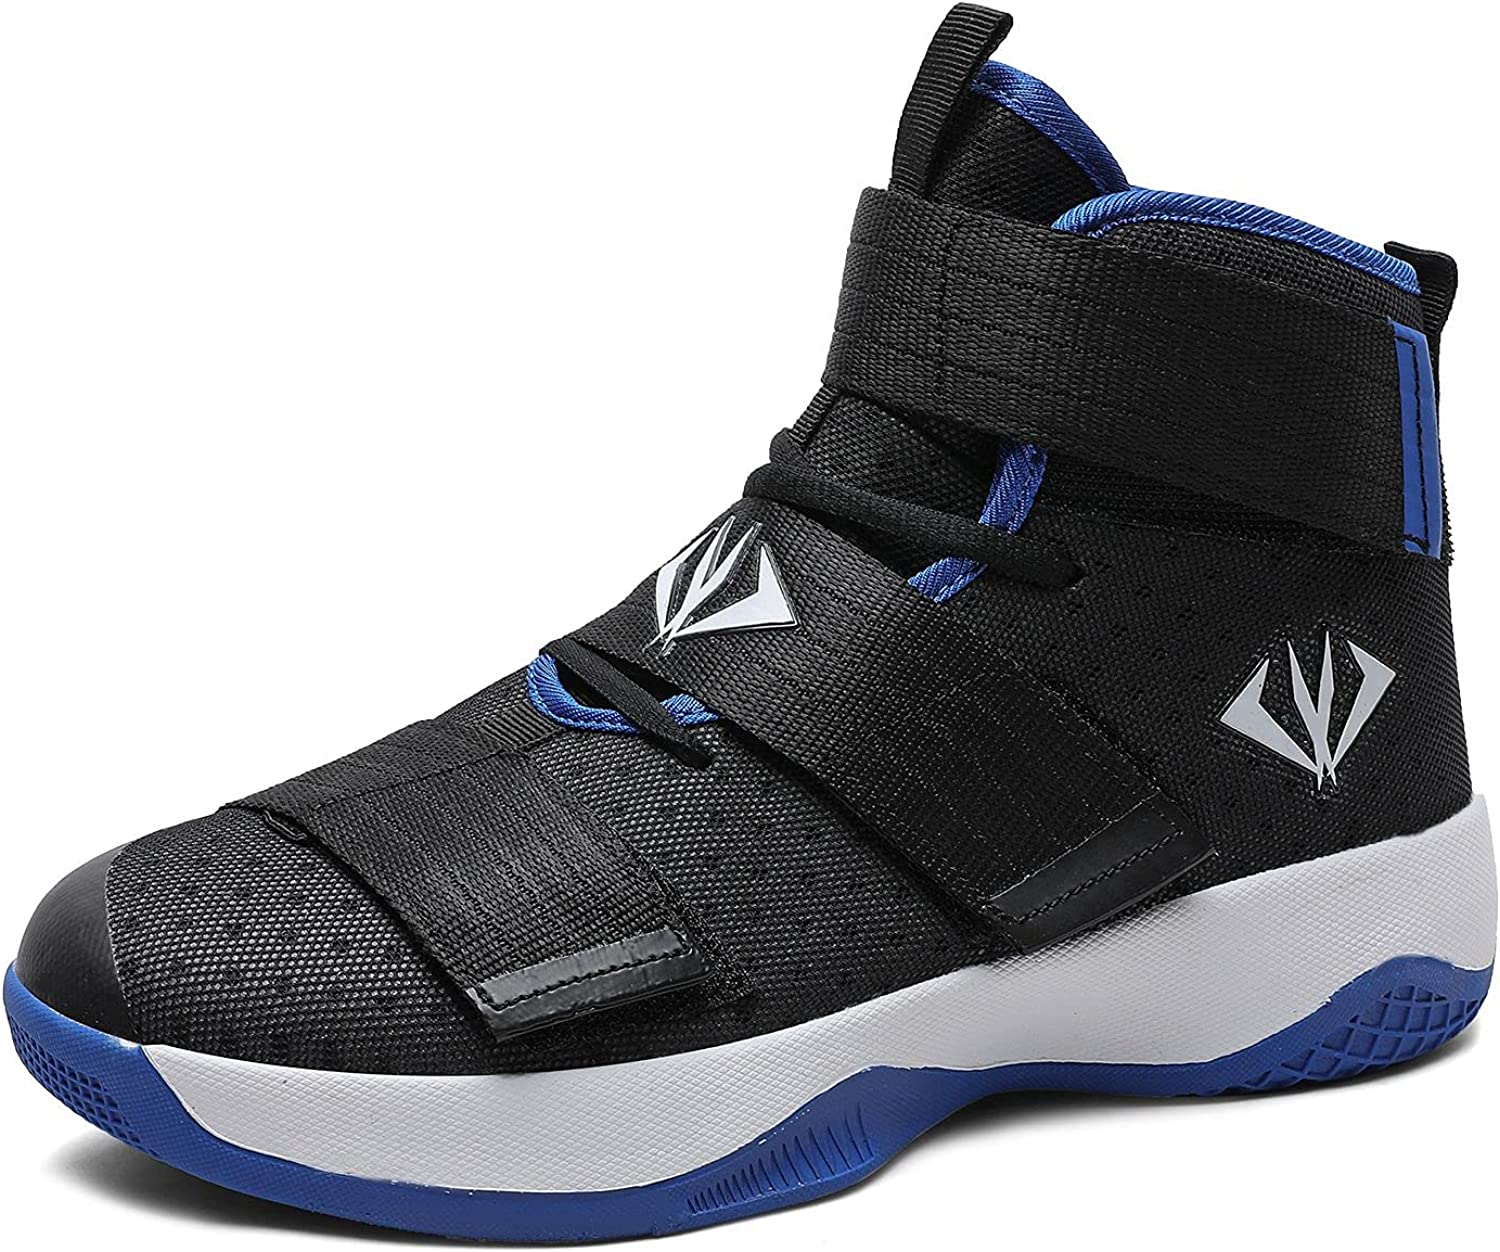 Courier shipping free shipping Directly managed store MAUGELY Men's Women's Velcro Basketball Student Shoes Breathable